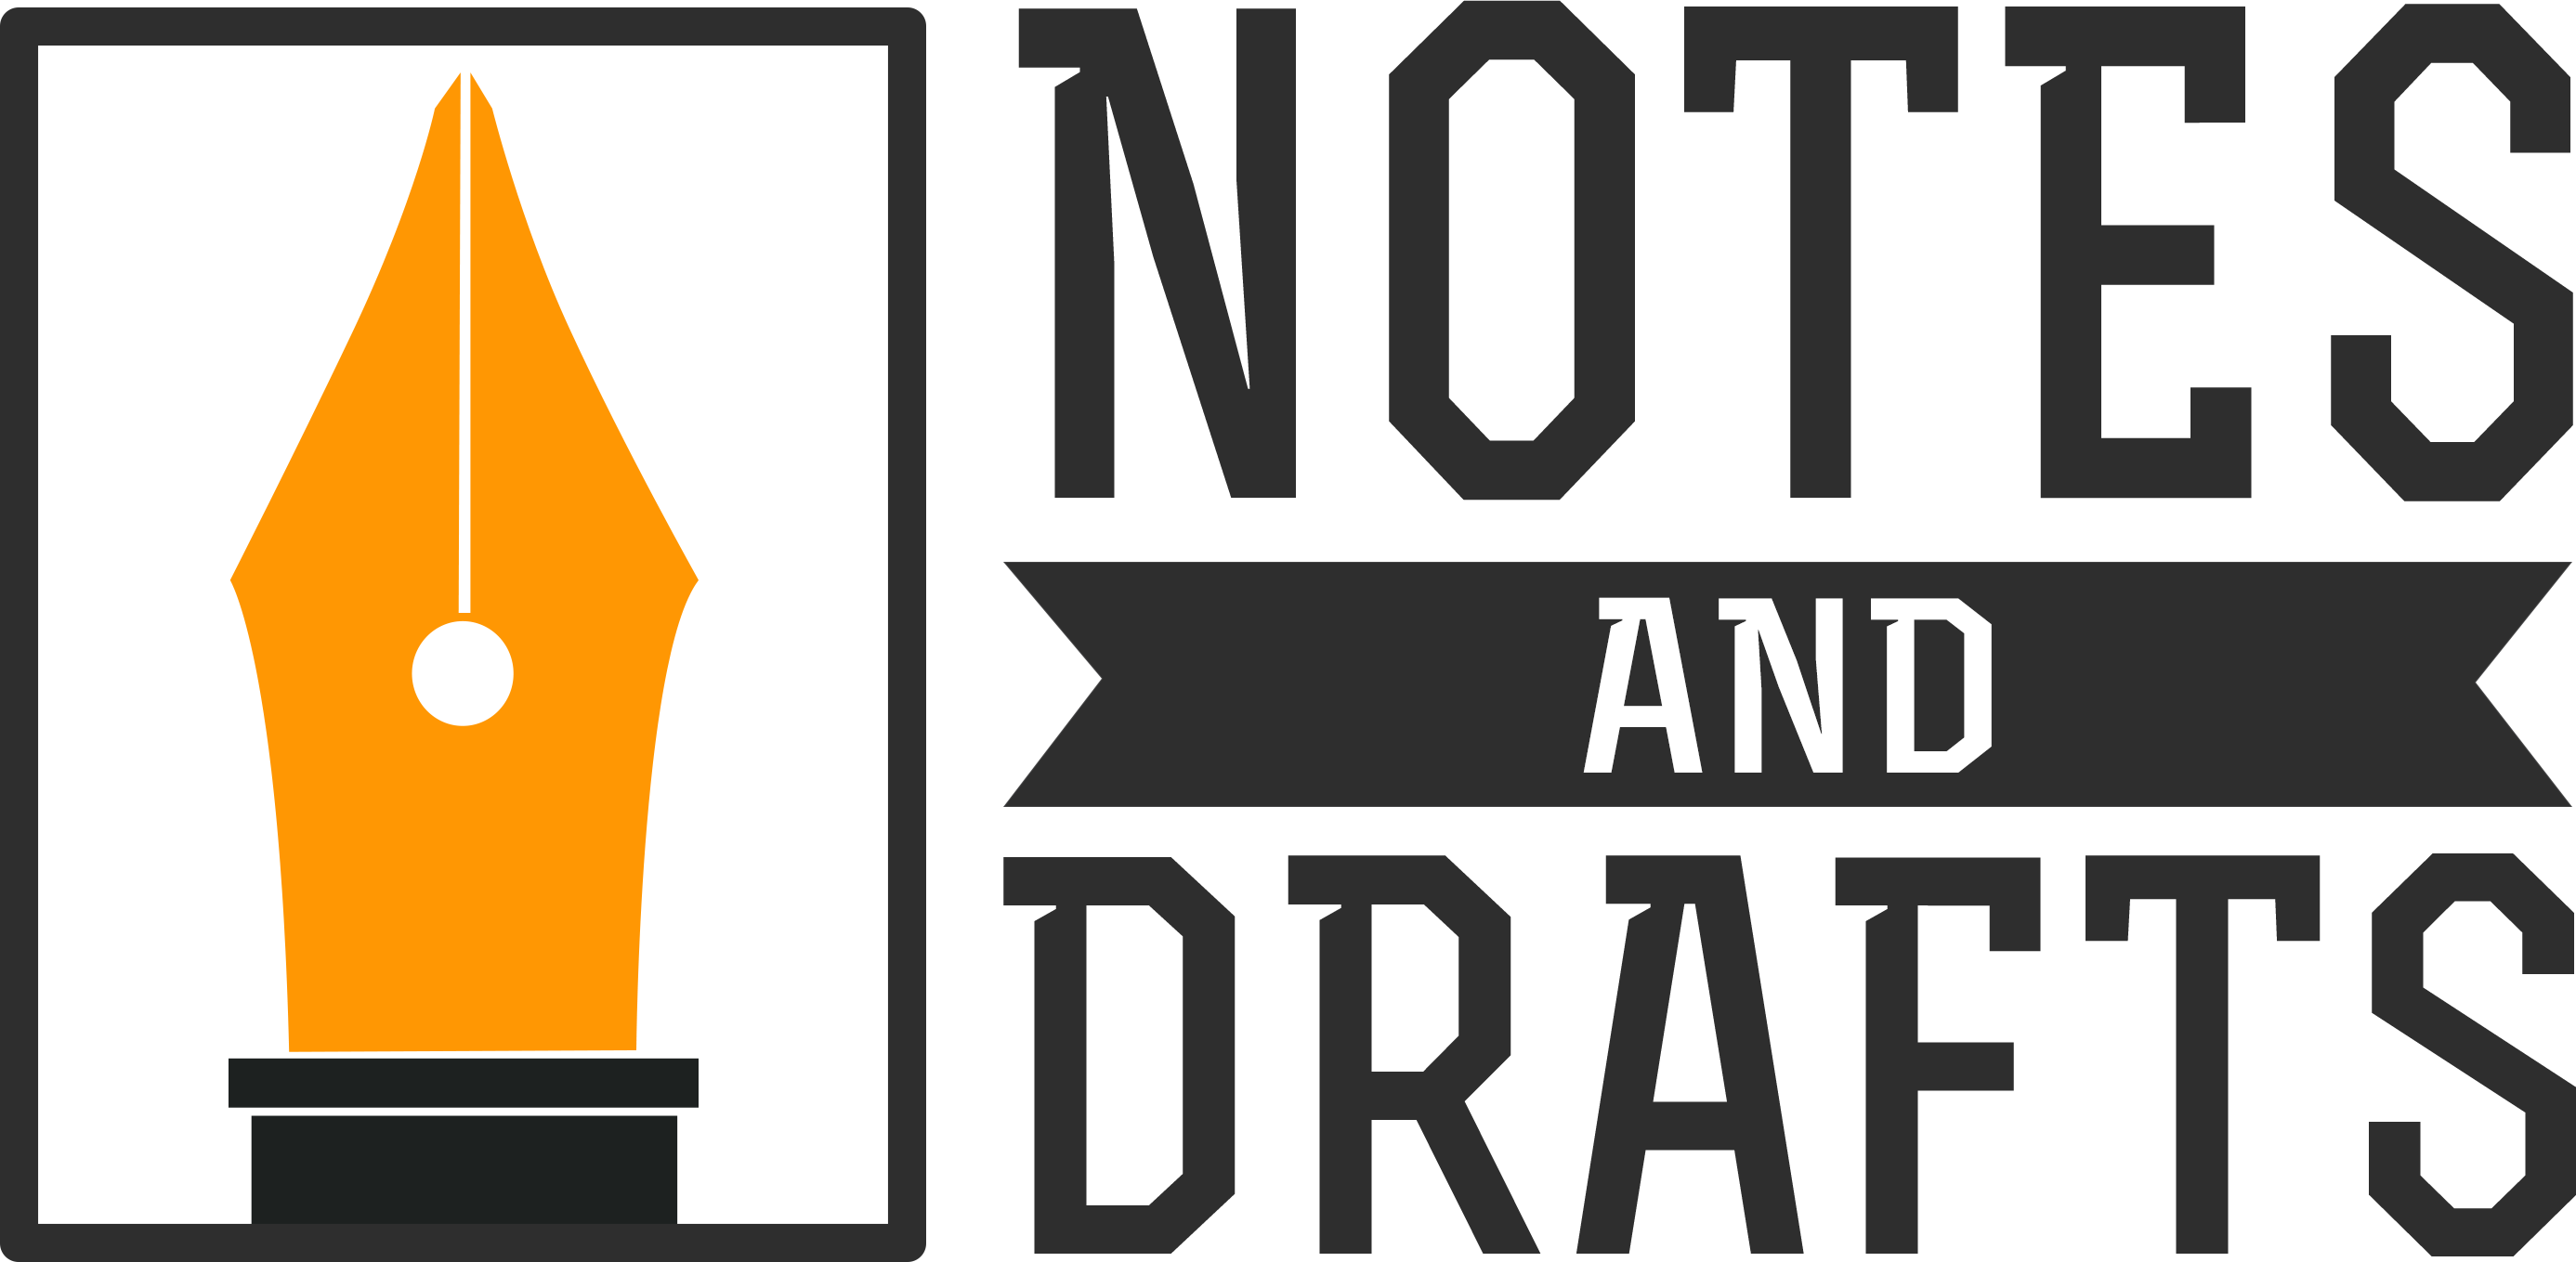 Notes and drafts logo